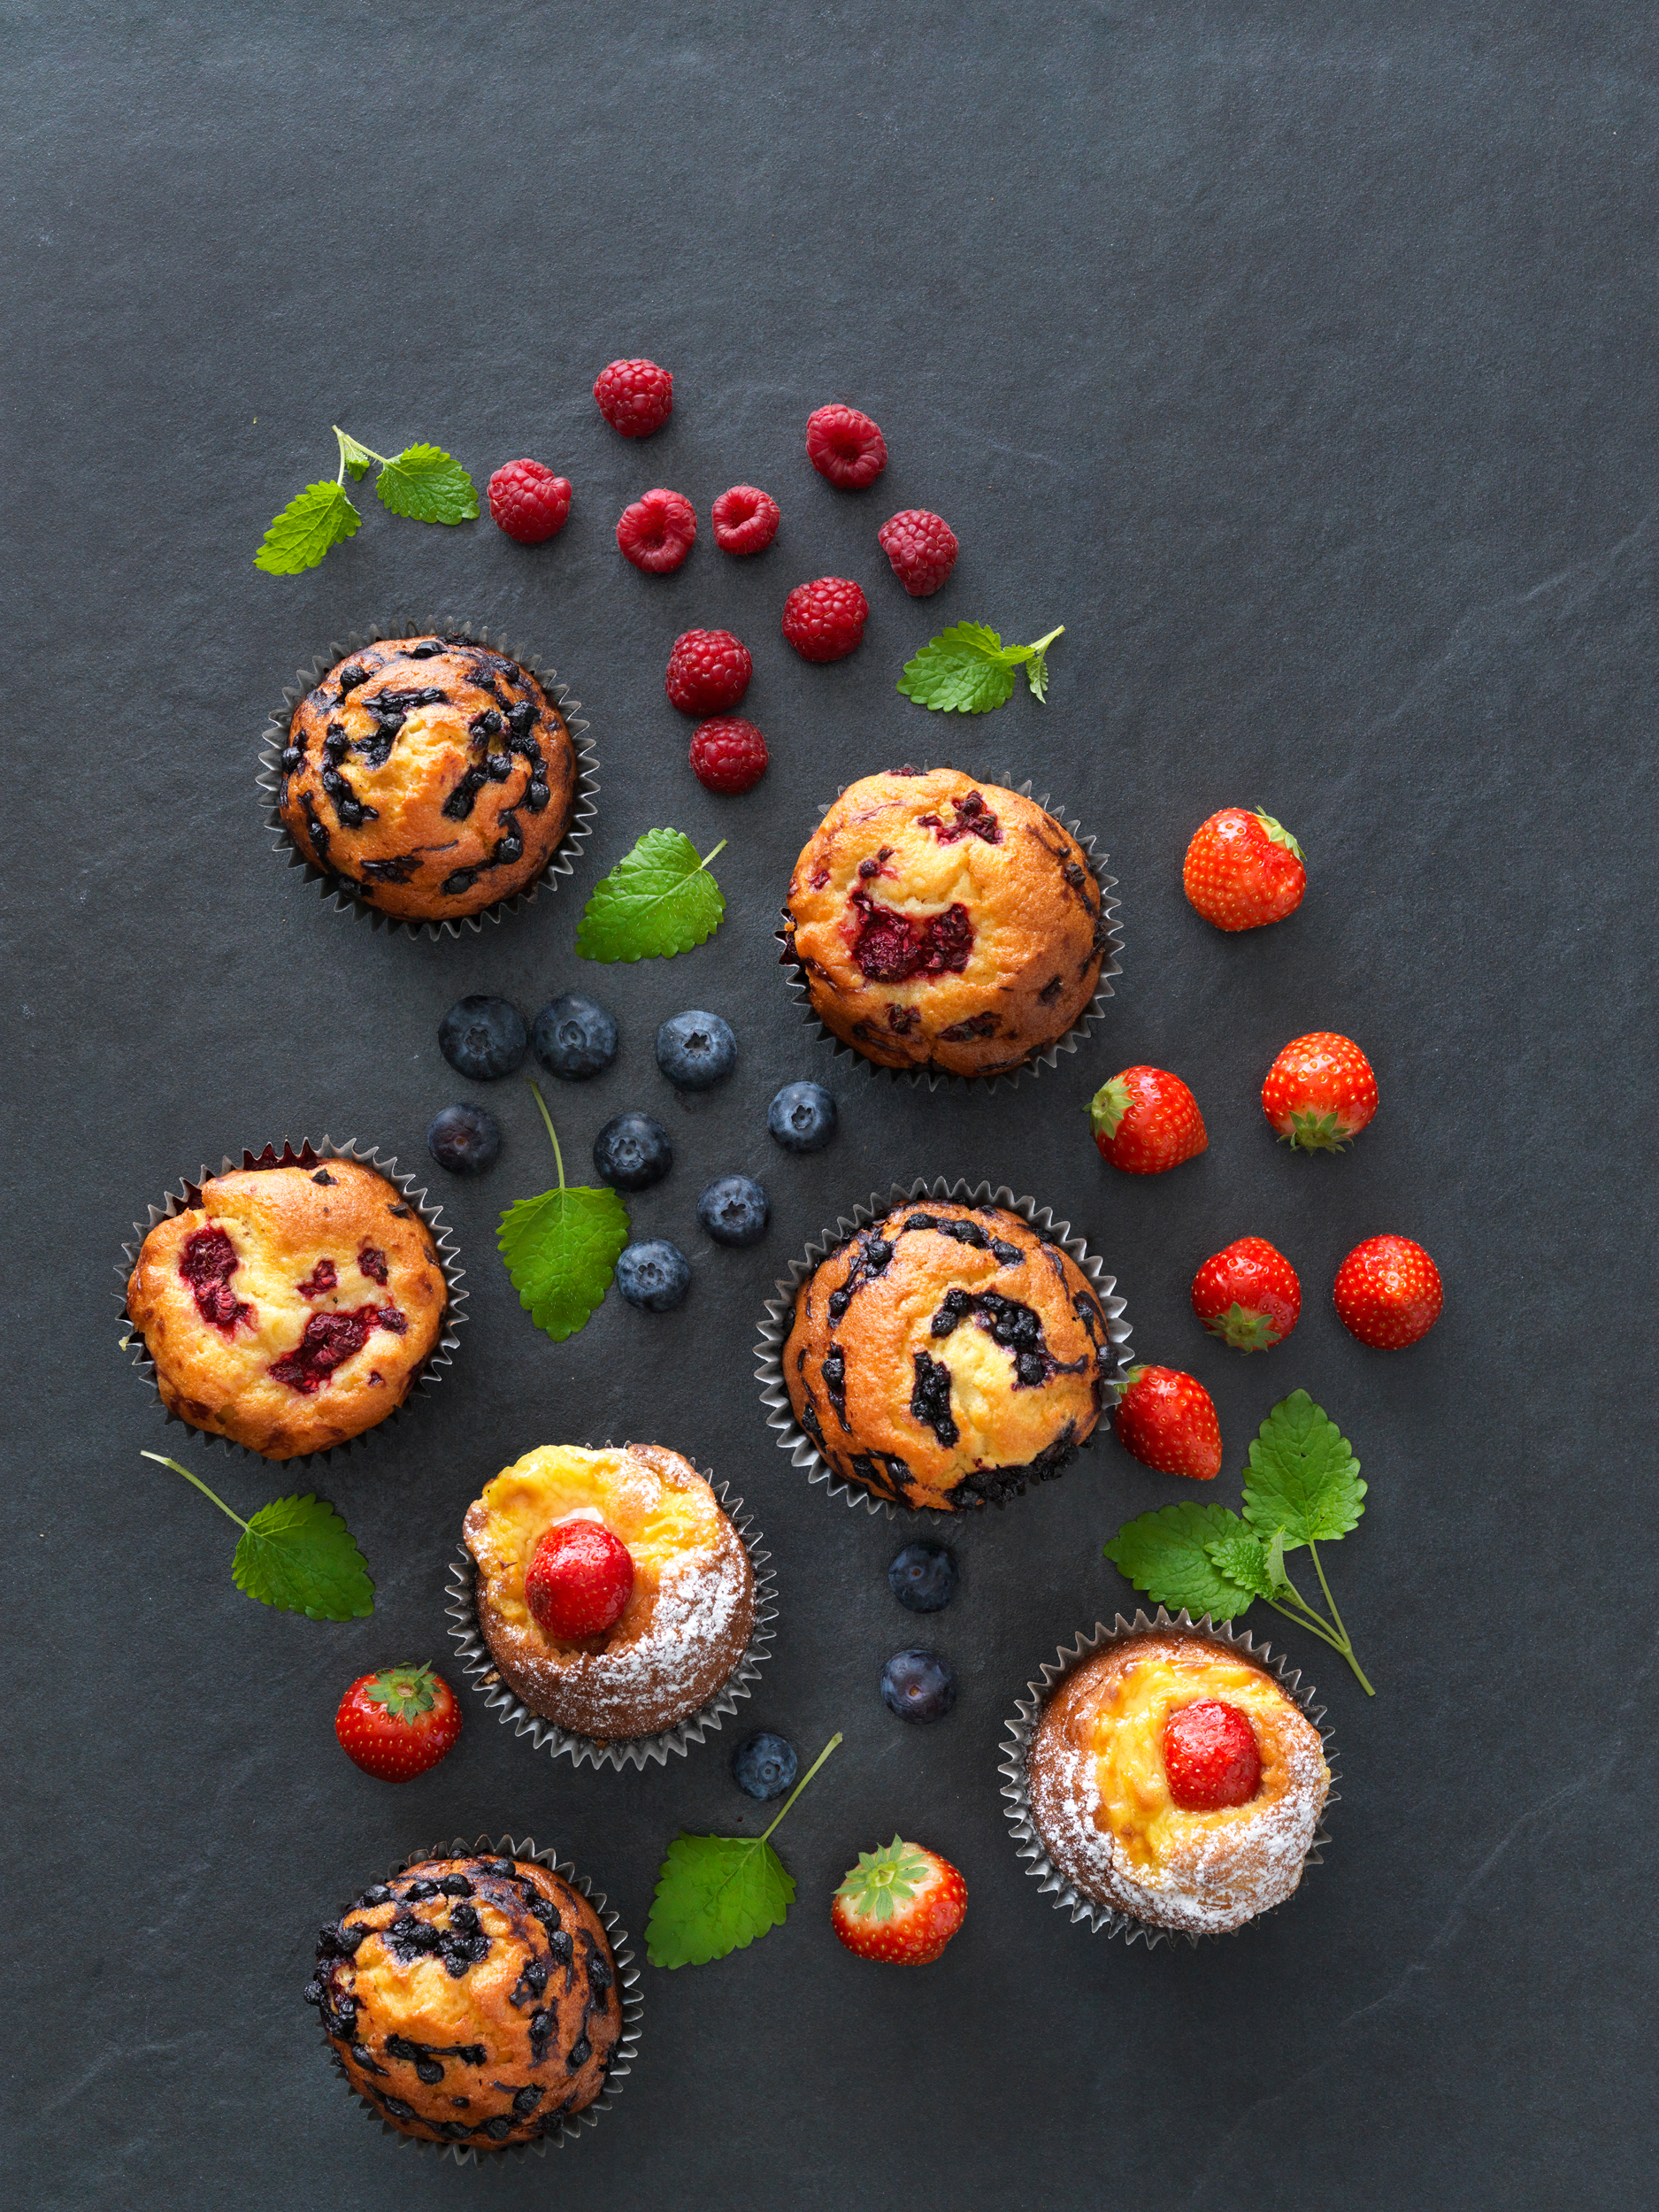 Muffins on a black table with berries